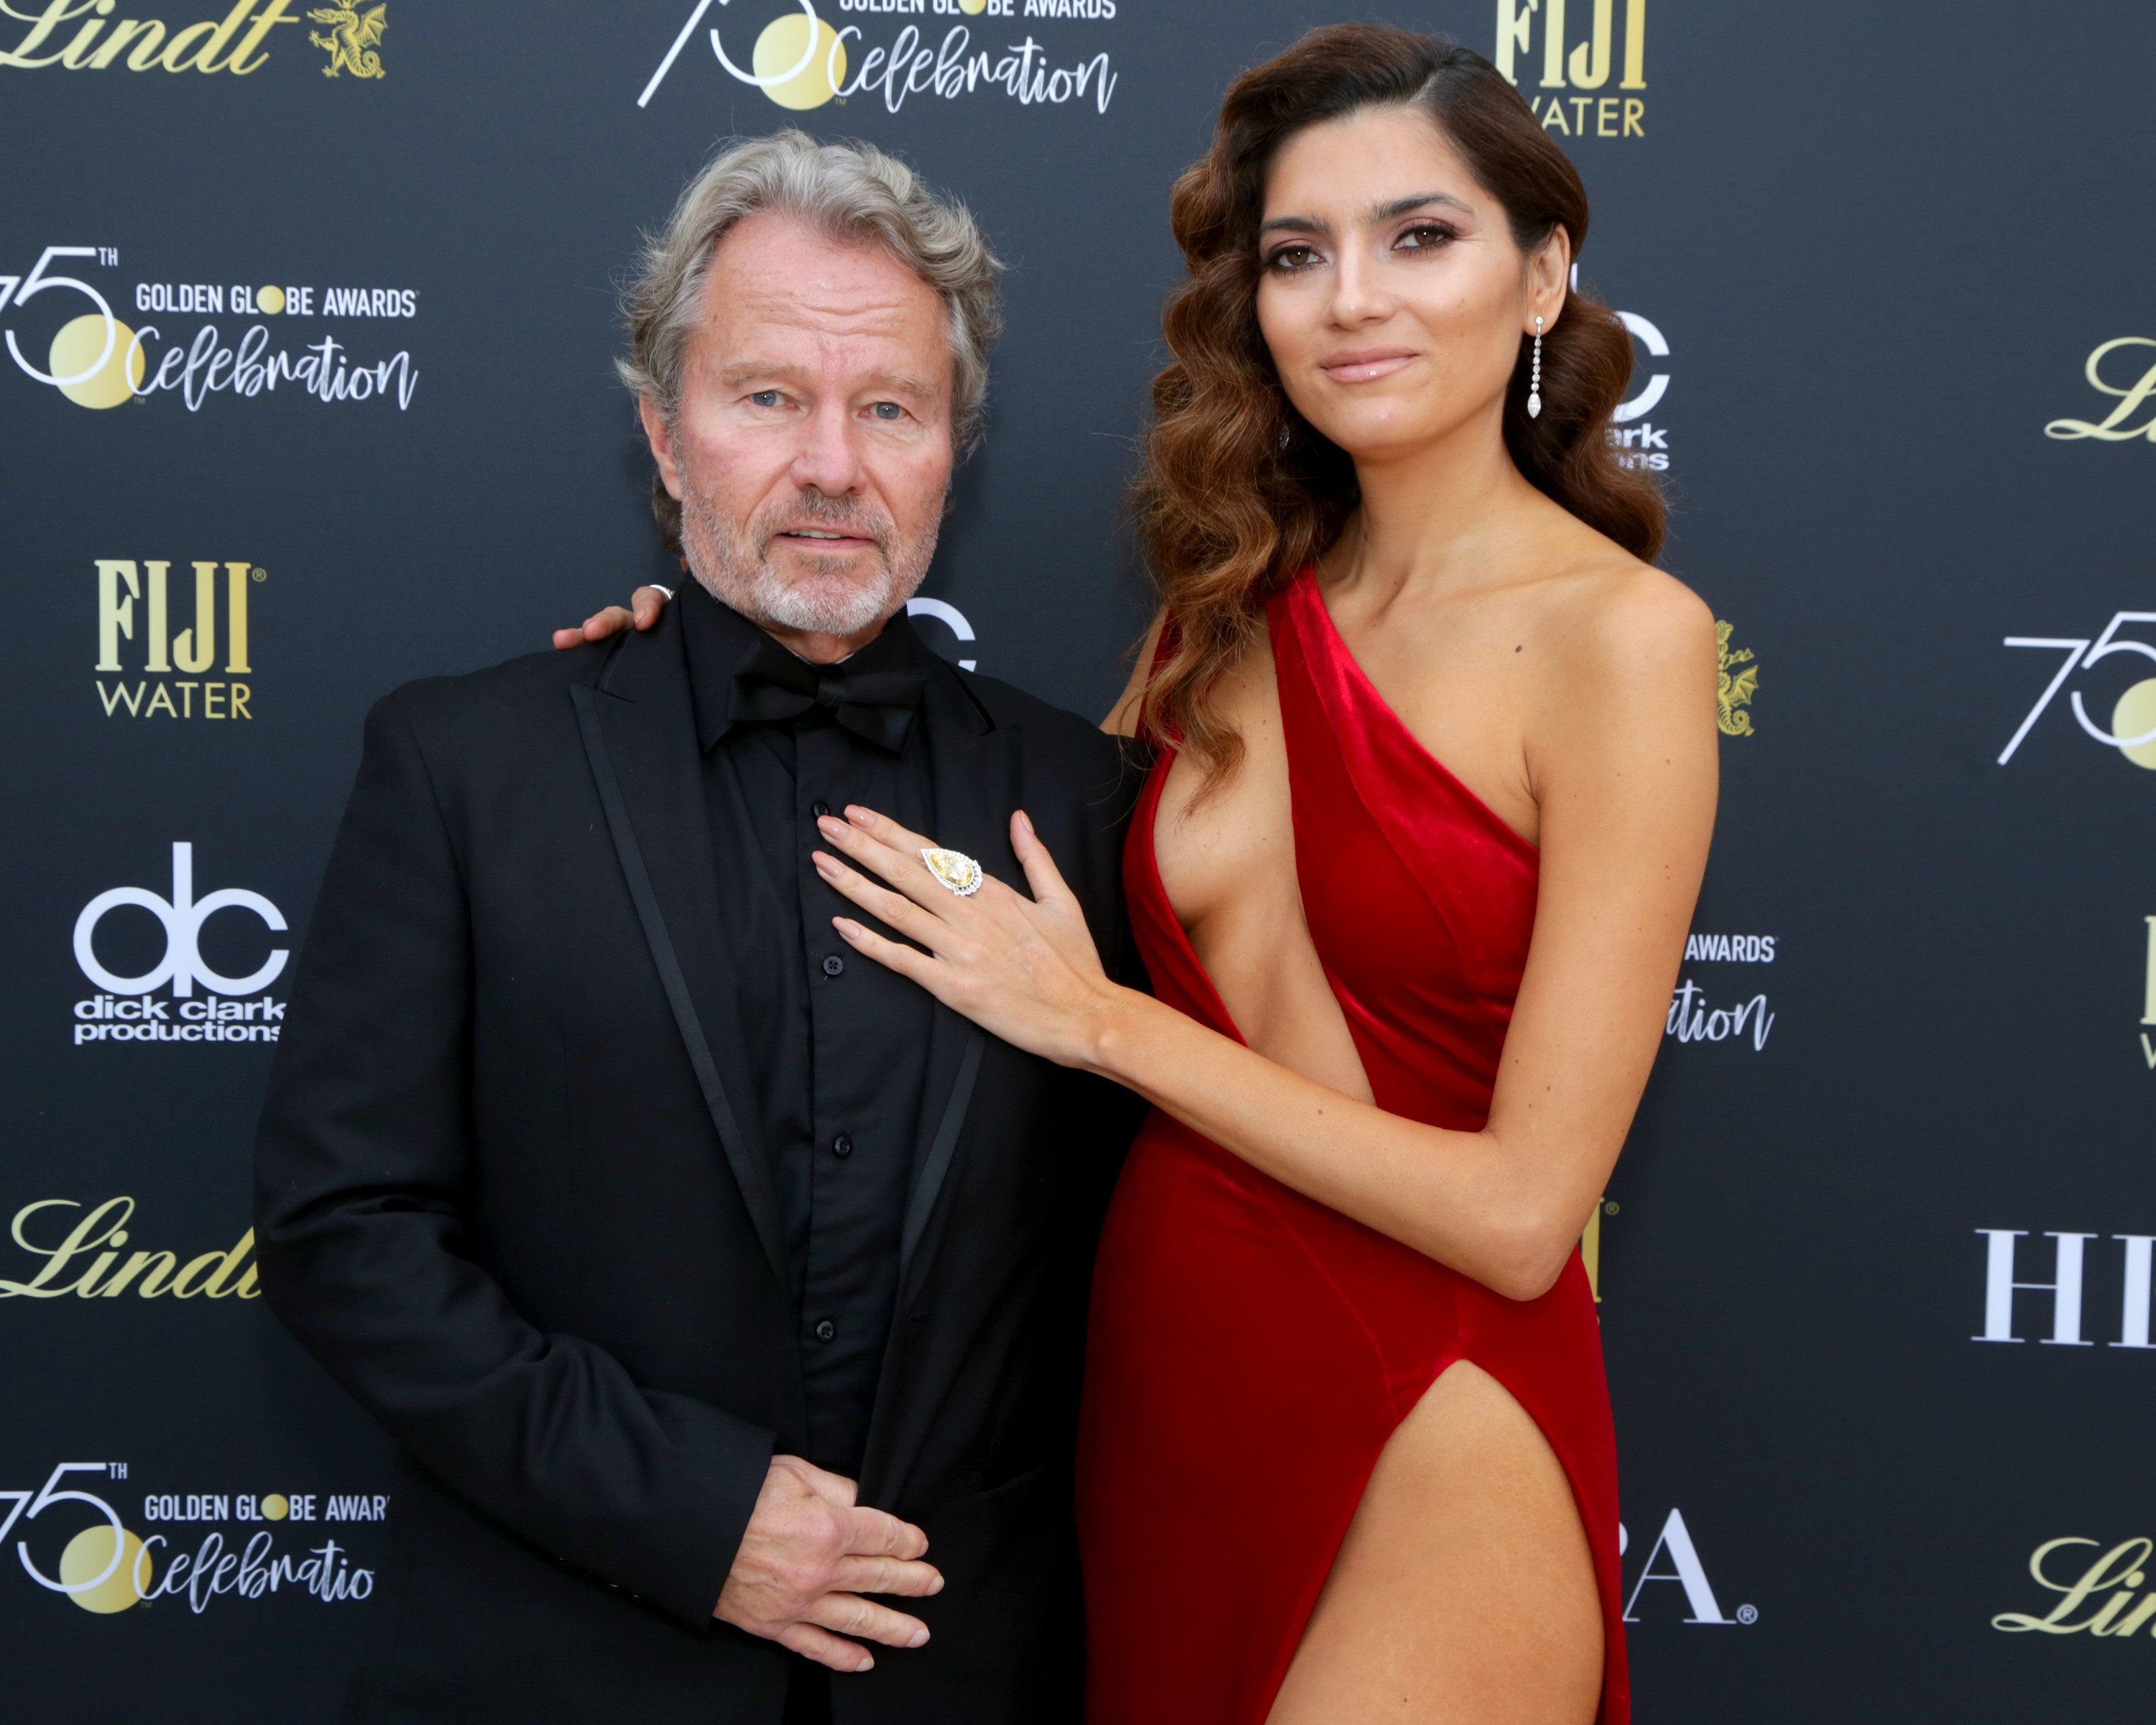 BEVERLY HILLS, CA - JANUARY 07:  Actors John Savage (L) and Blanca Blanco attend the Official Viewing and After Party of The Golden Globe Awards bosted by The Hollywood Foreign Press Association on January 7, 2018 in Beverly Hills, California.  (Photo by Greg Doherty/Getty Images)